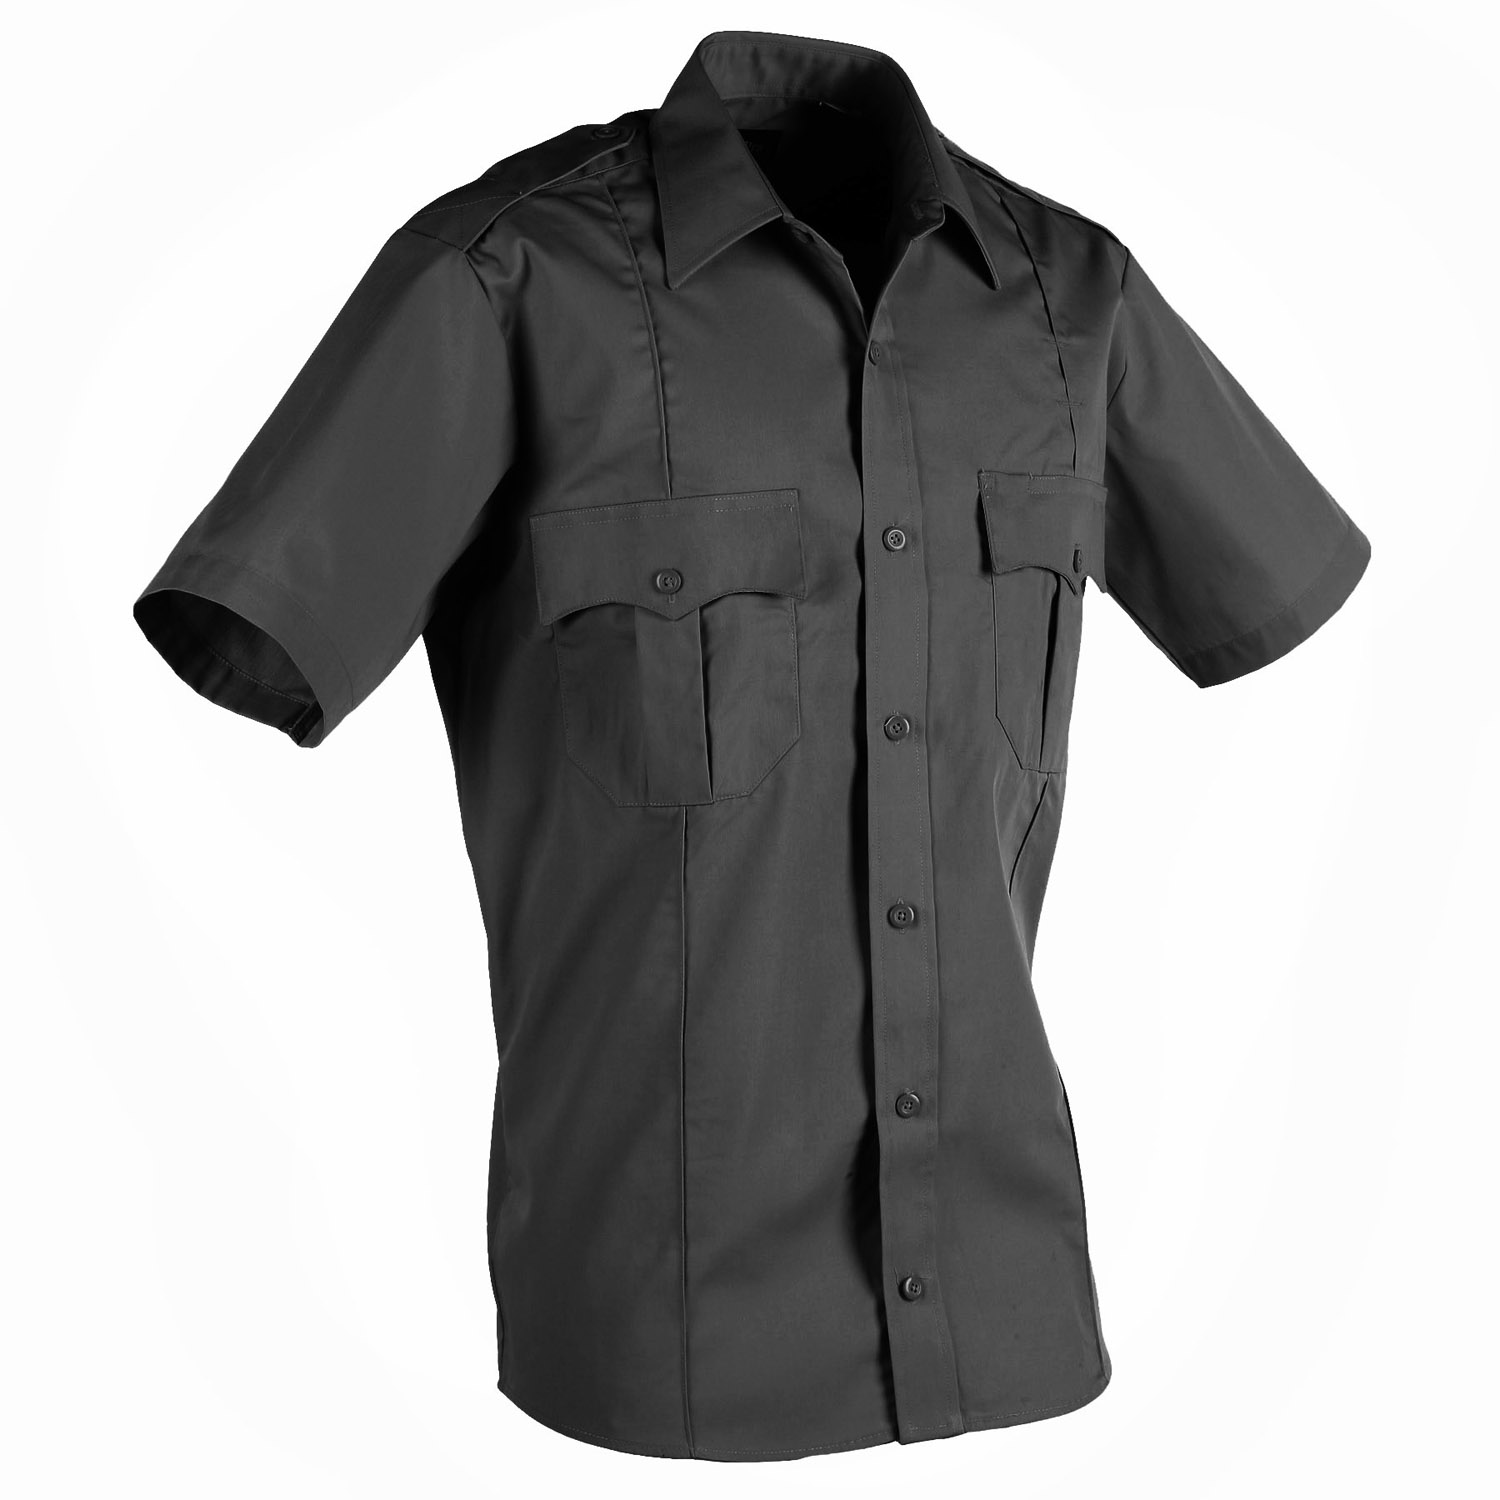 LawPro Poly Cotton Short Sleeve Premium Shirt